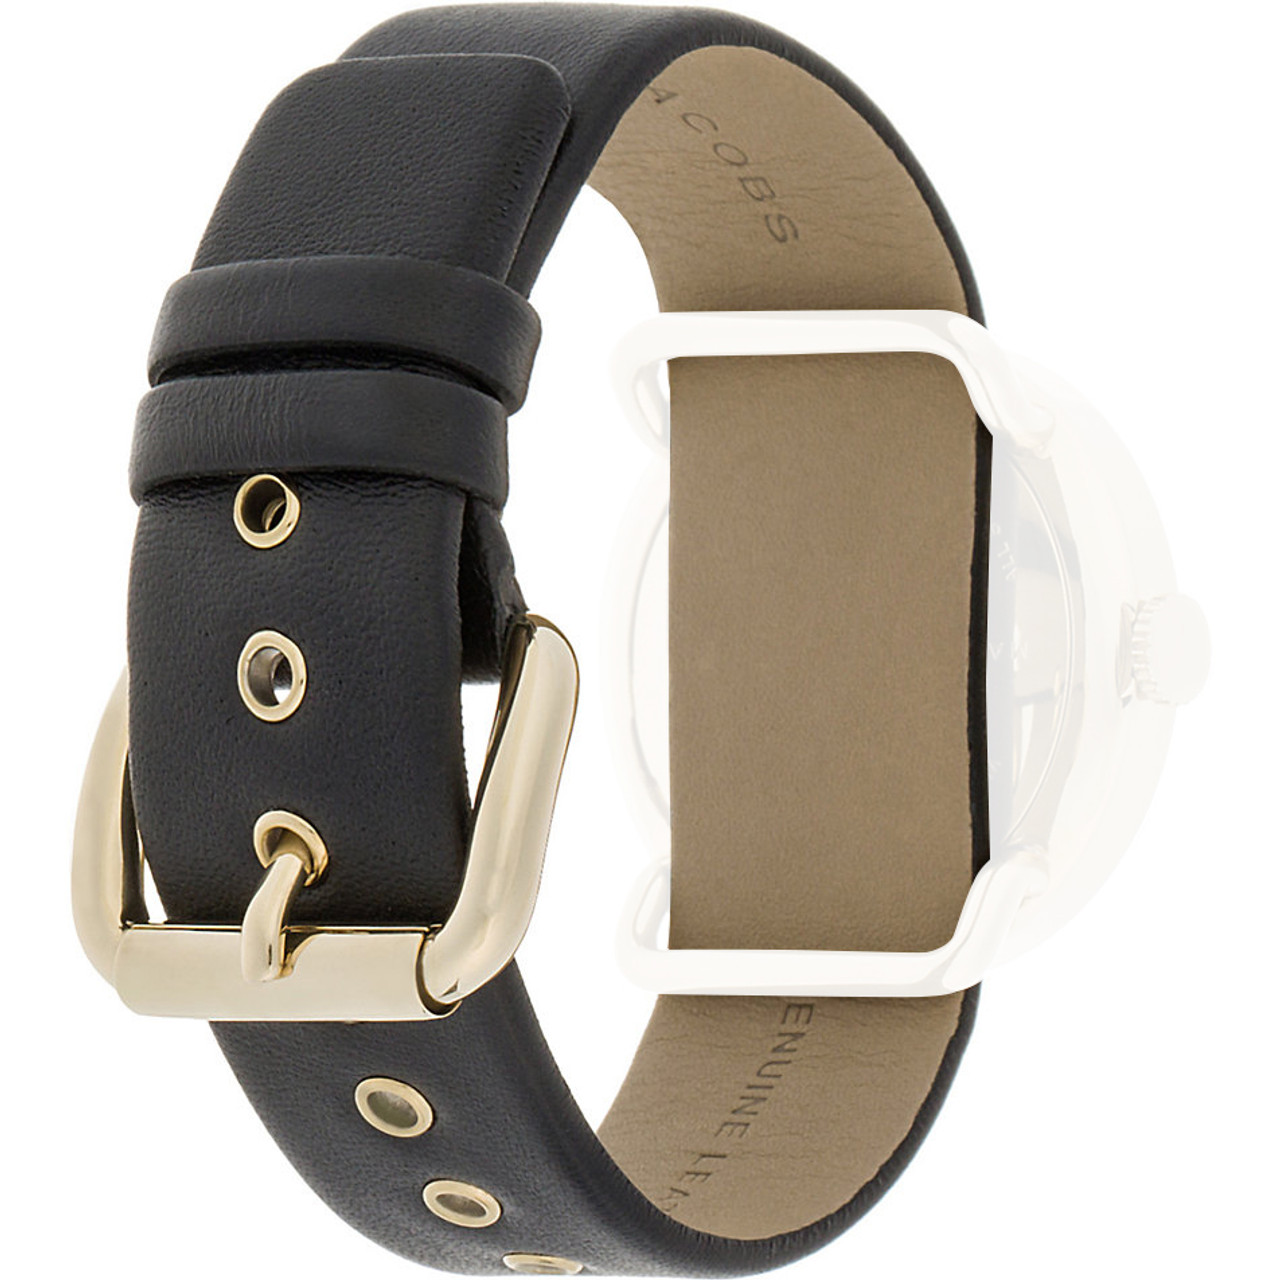 2620d7de379f8 Marc Jacobs Replacement Watch Strap Black Leather 20mm For MBM1154